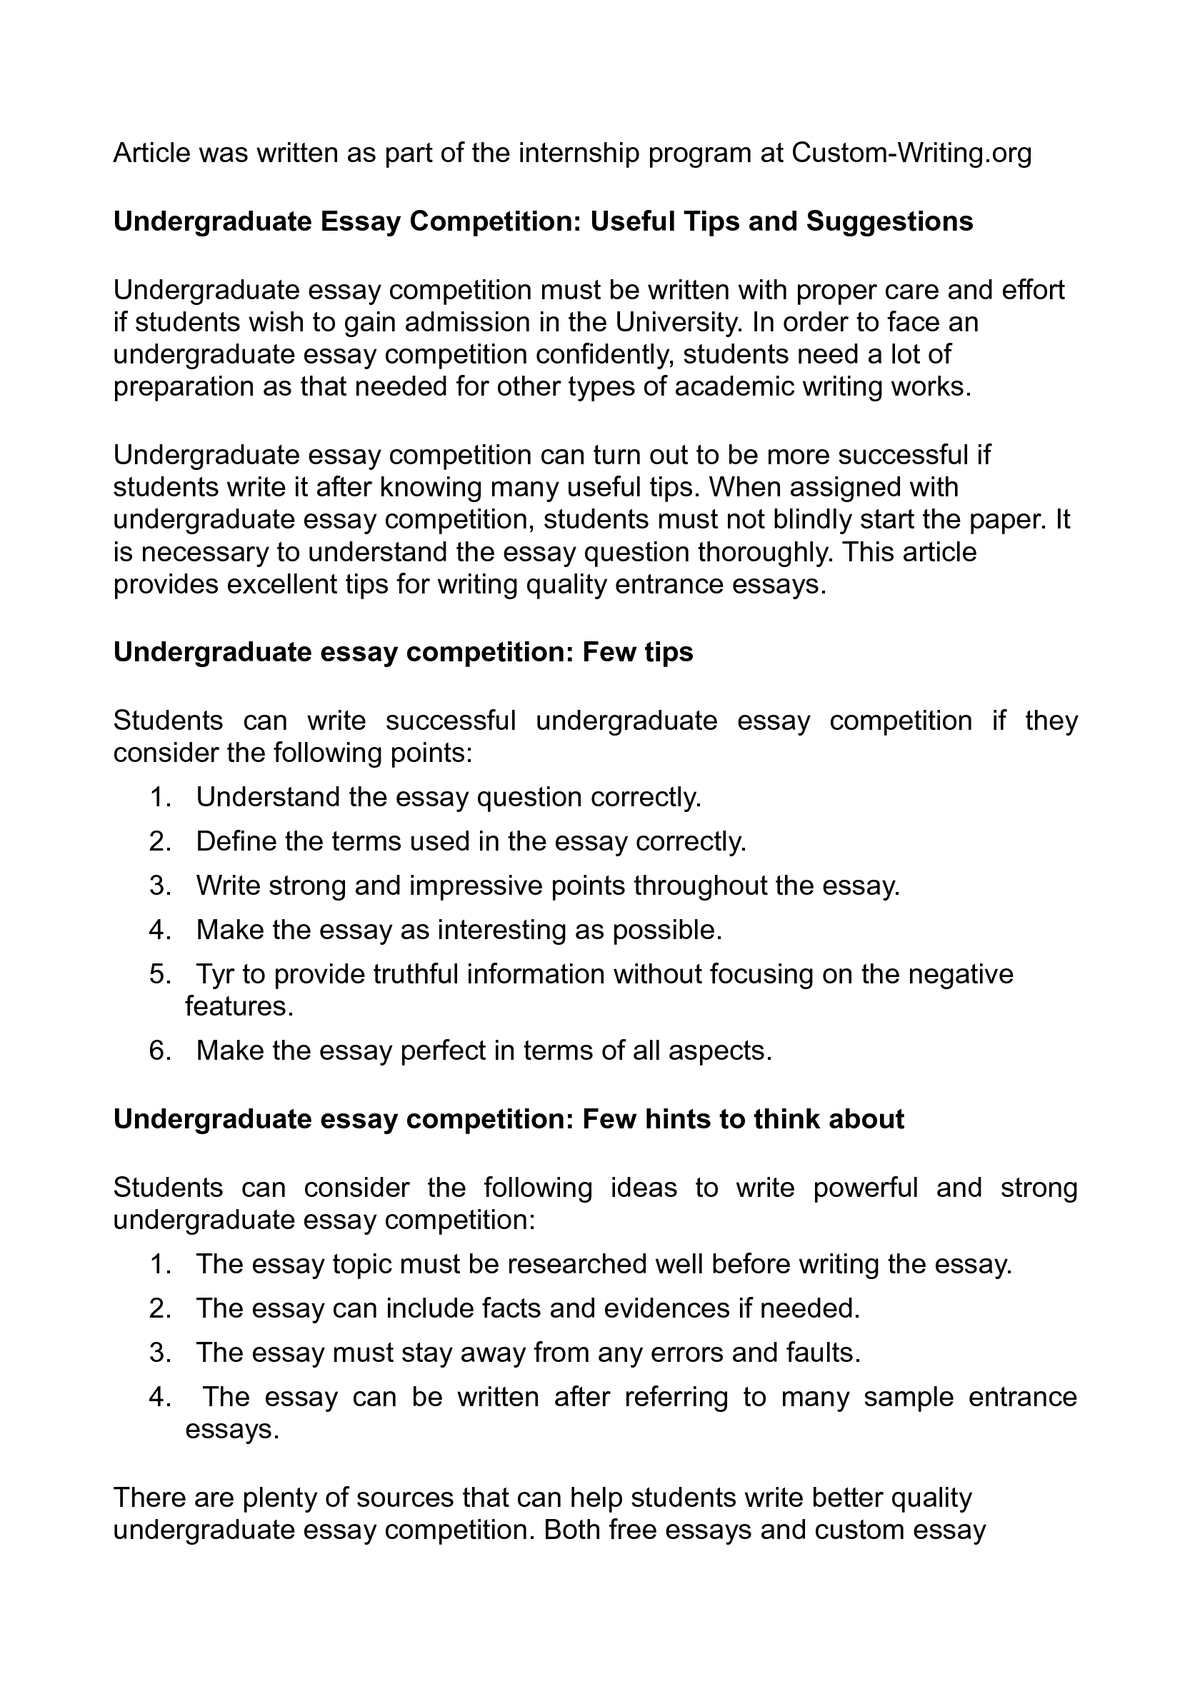 Persuasive Essay Thesis Statement Examples  Apa Style Essay Paper also Essay On My Mother In English Calamo  Undergraduate Essay Competition Useful Tips And Suggestions English Essay Introduction Example